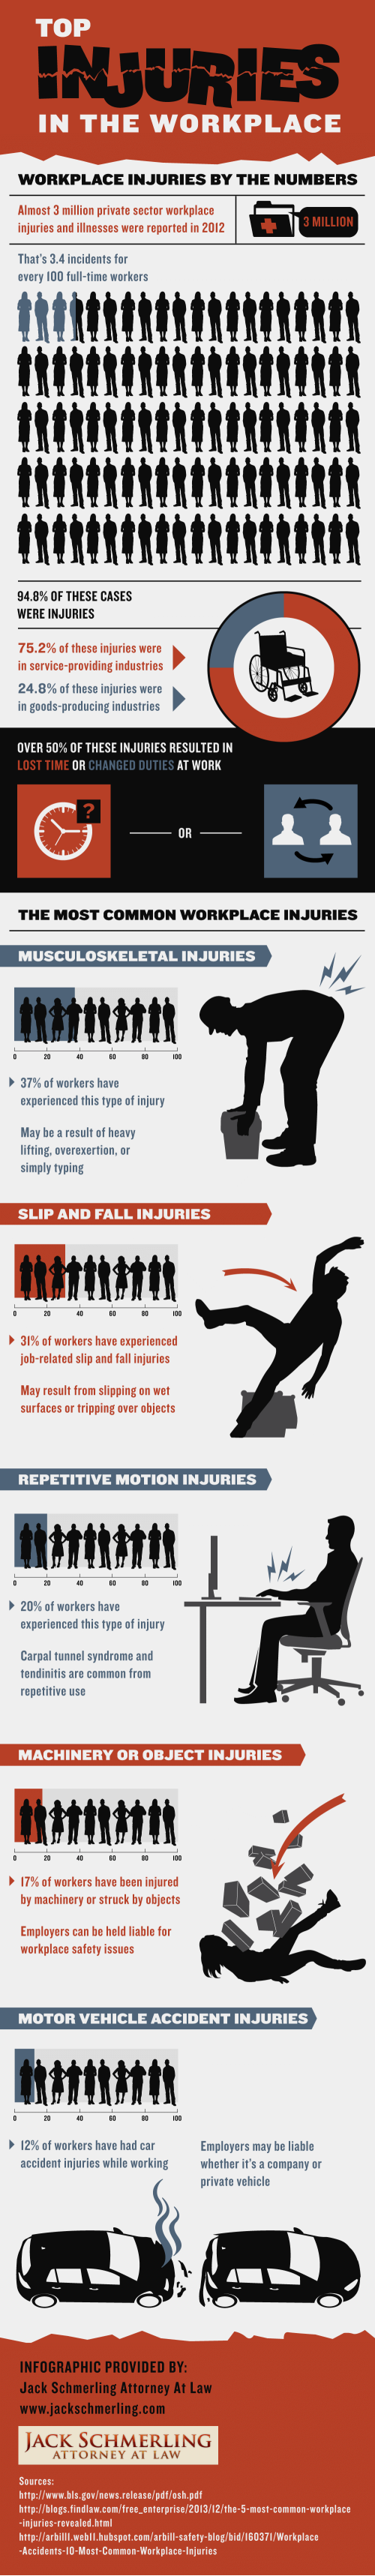 top-injuries-in-the-workplace